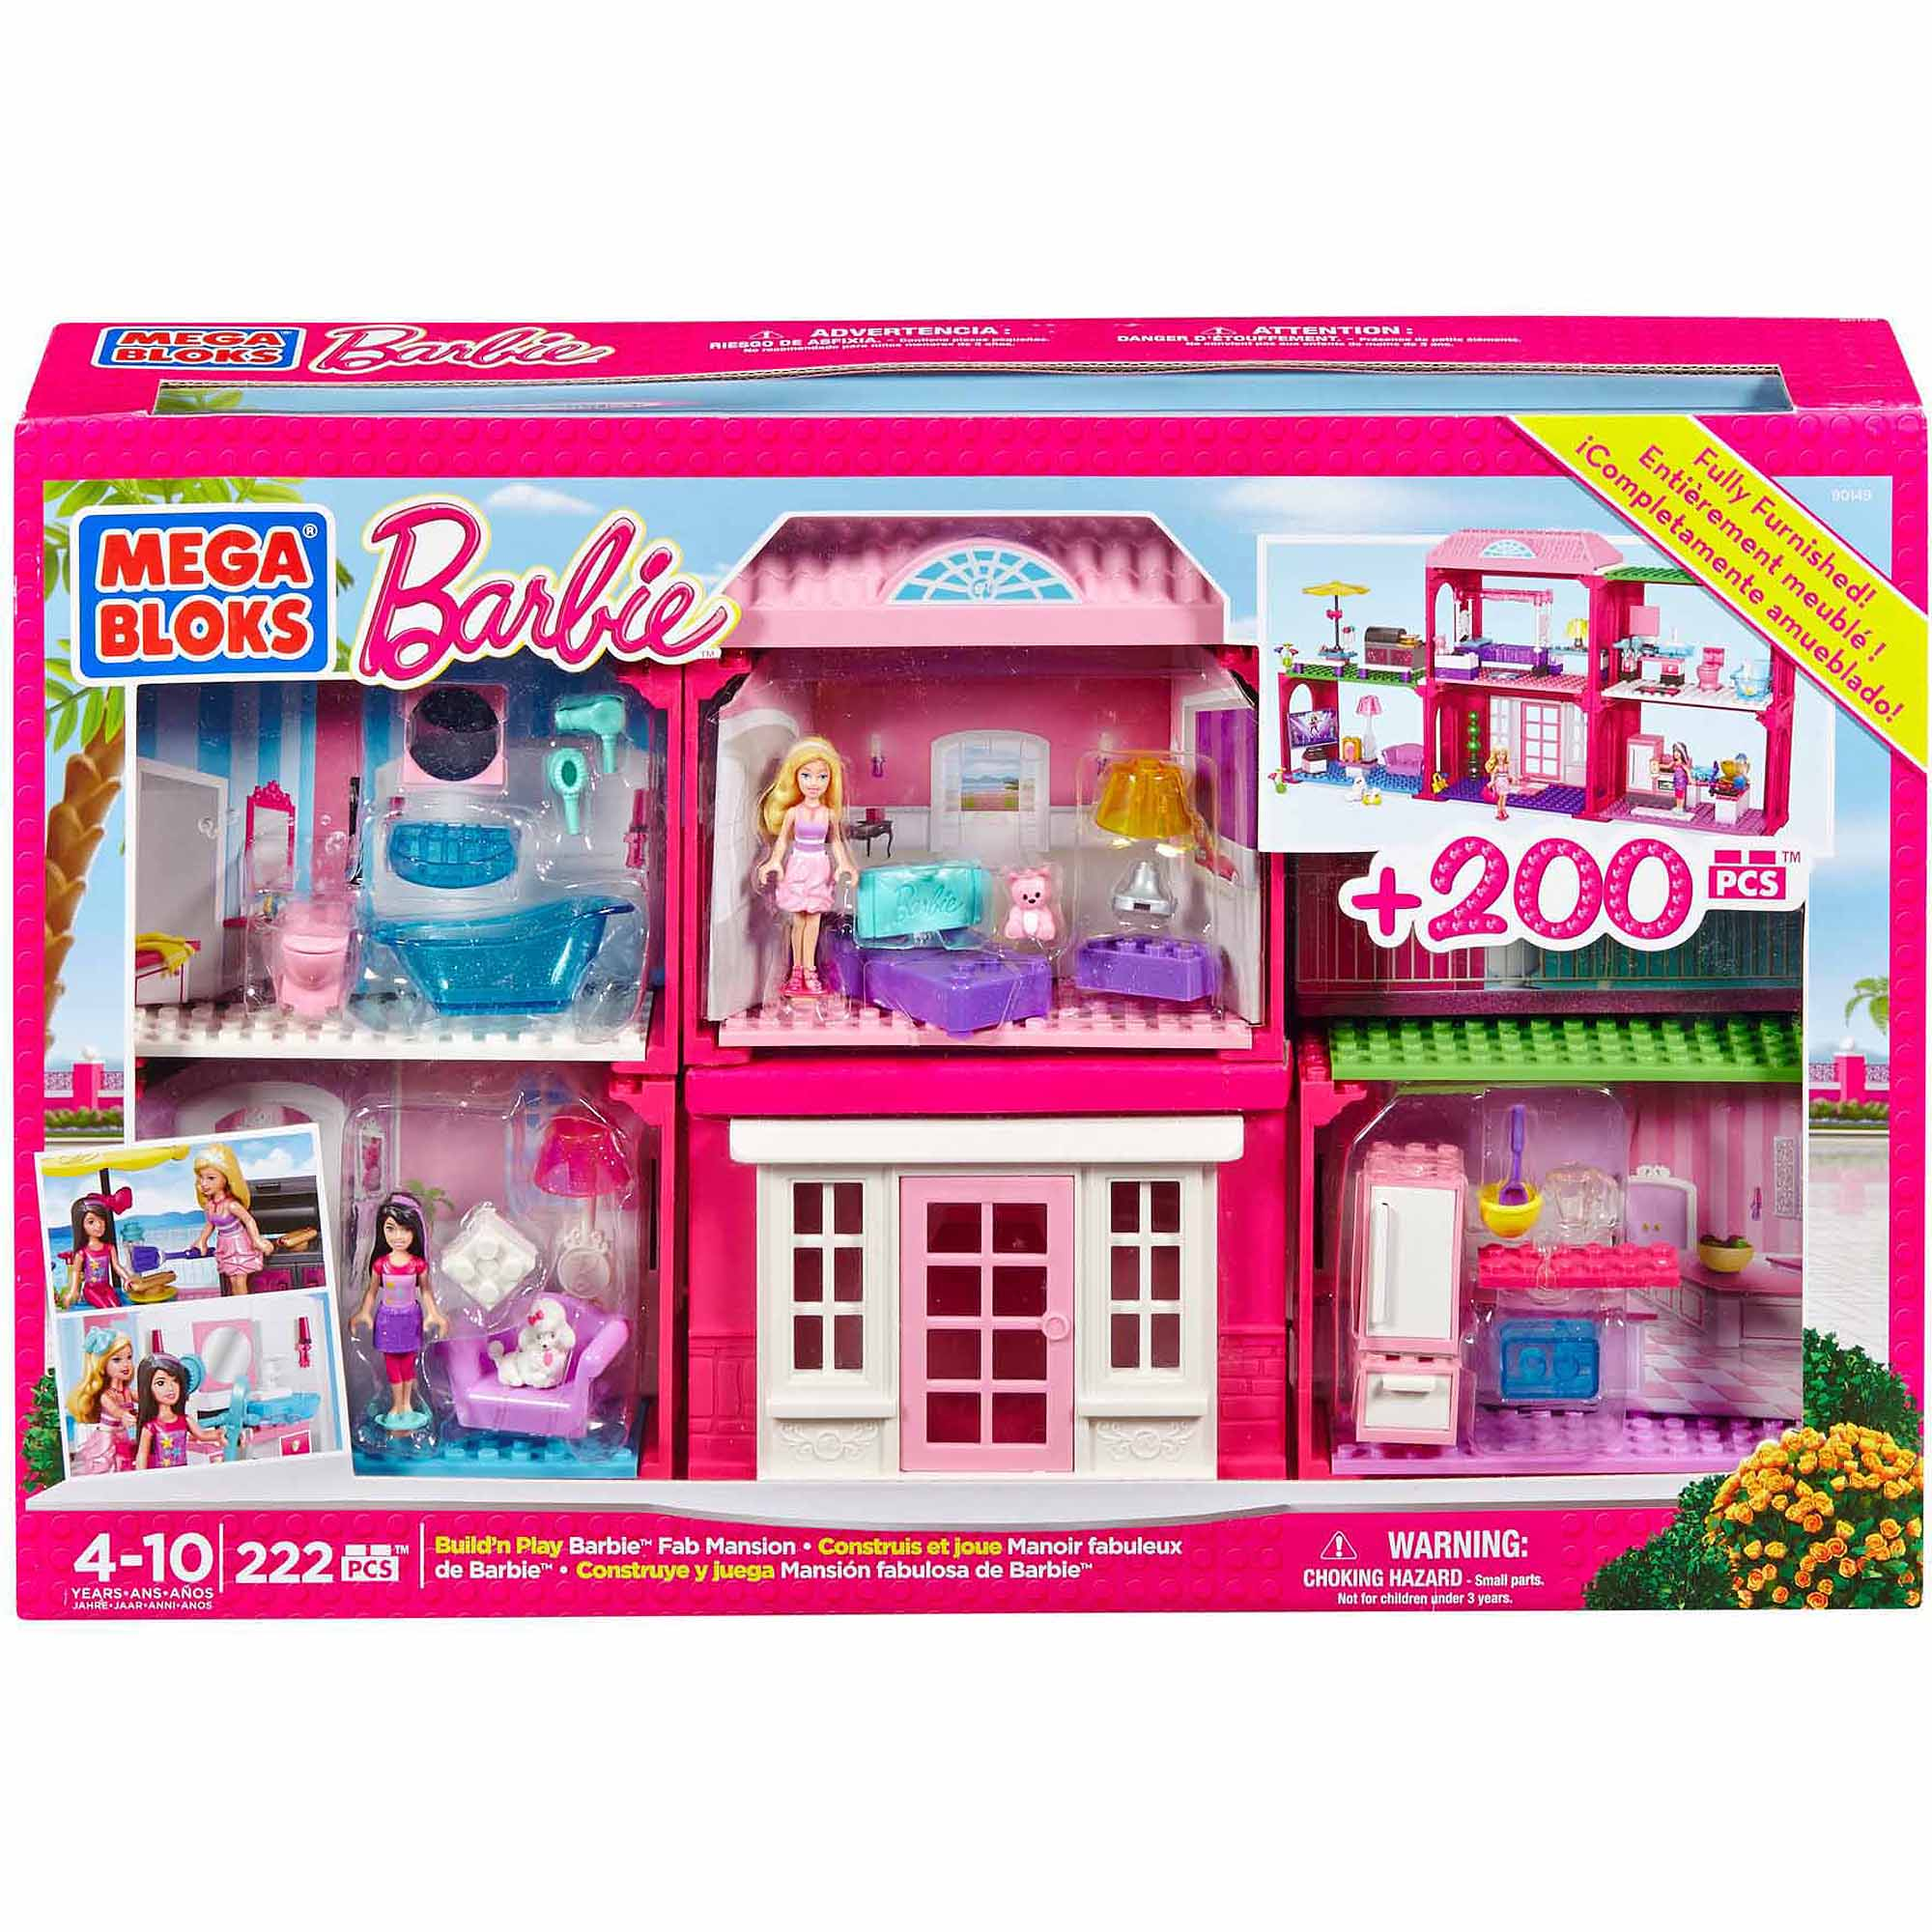 Mega Bloks Build 'n Play Barbie Fab Mansion